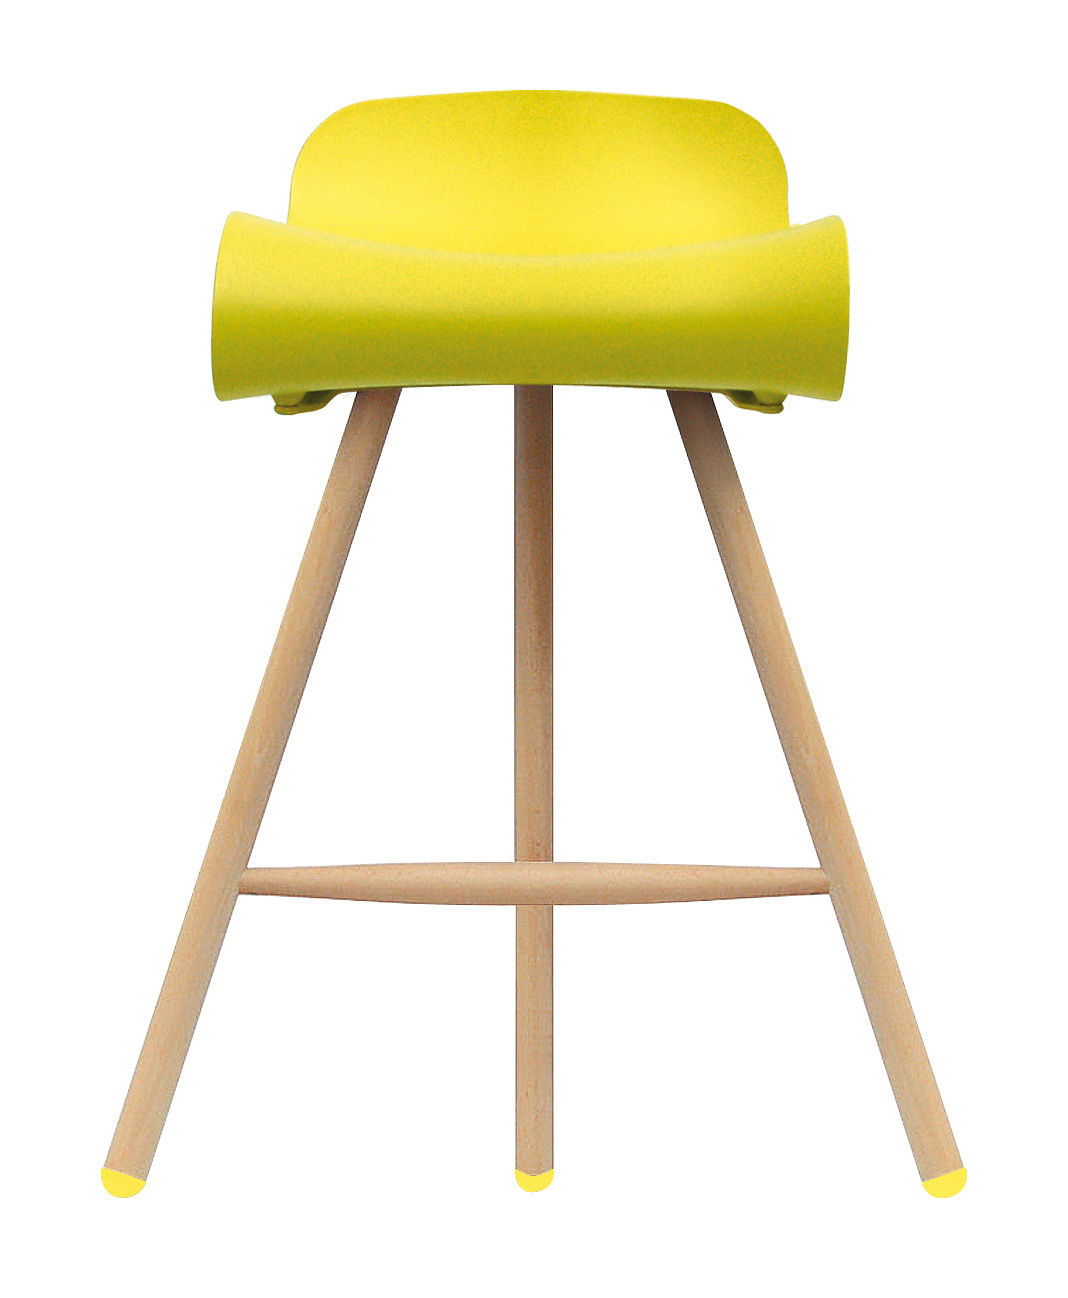 tabouret de bar bcn wood h 66 cm pieds bois jaune. Black Bedroom Furniture Sets. Home Design Ideas